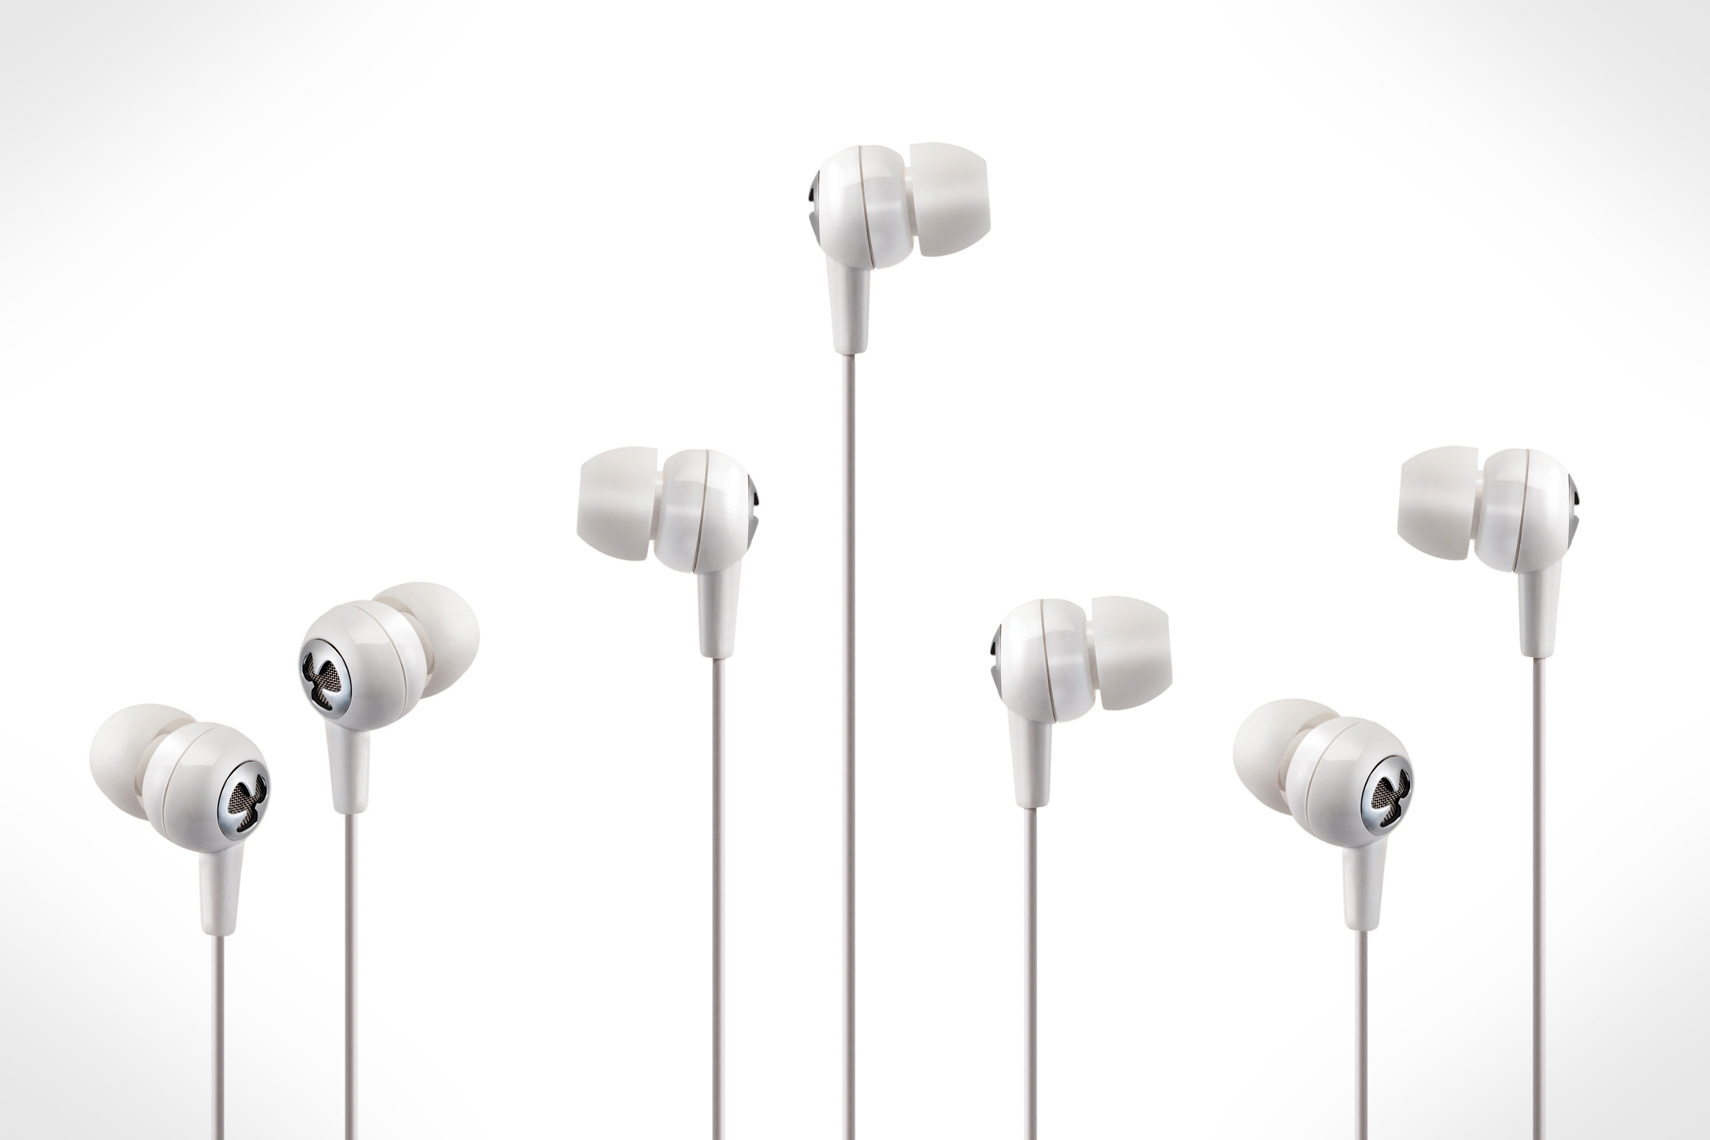 P032-product_shot_earphone.jpg